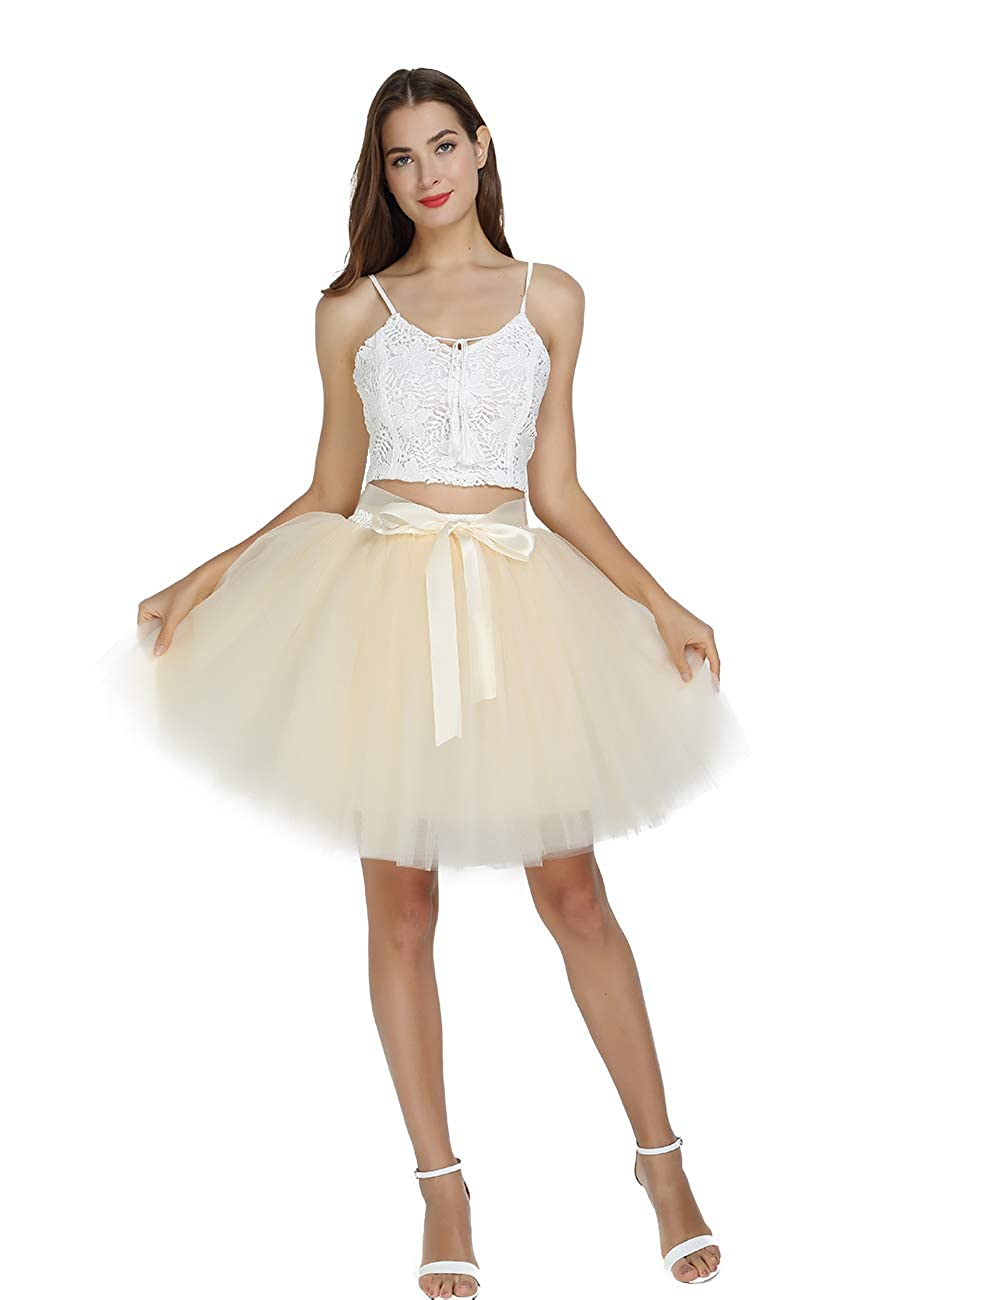 8ce8bc5967 Women's High Waist Princess Tulle Skirt Adult Dance Petticoat A-line  Wedding Party Tutu at Amazon Women's Clothing store: